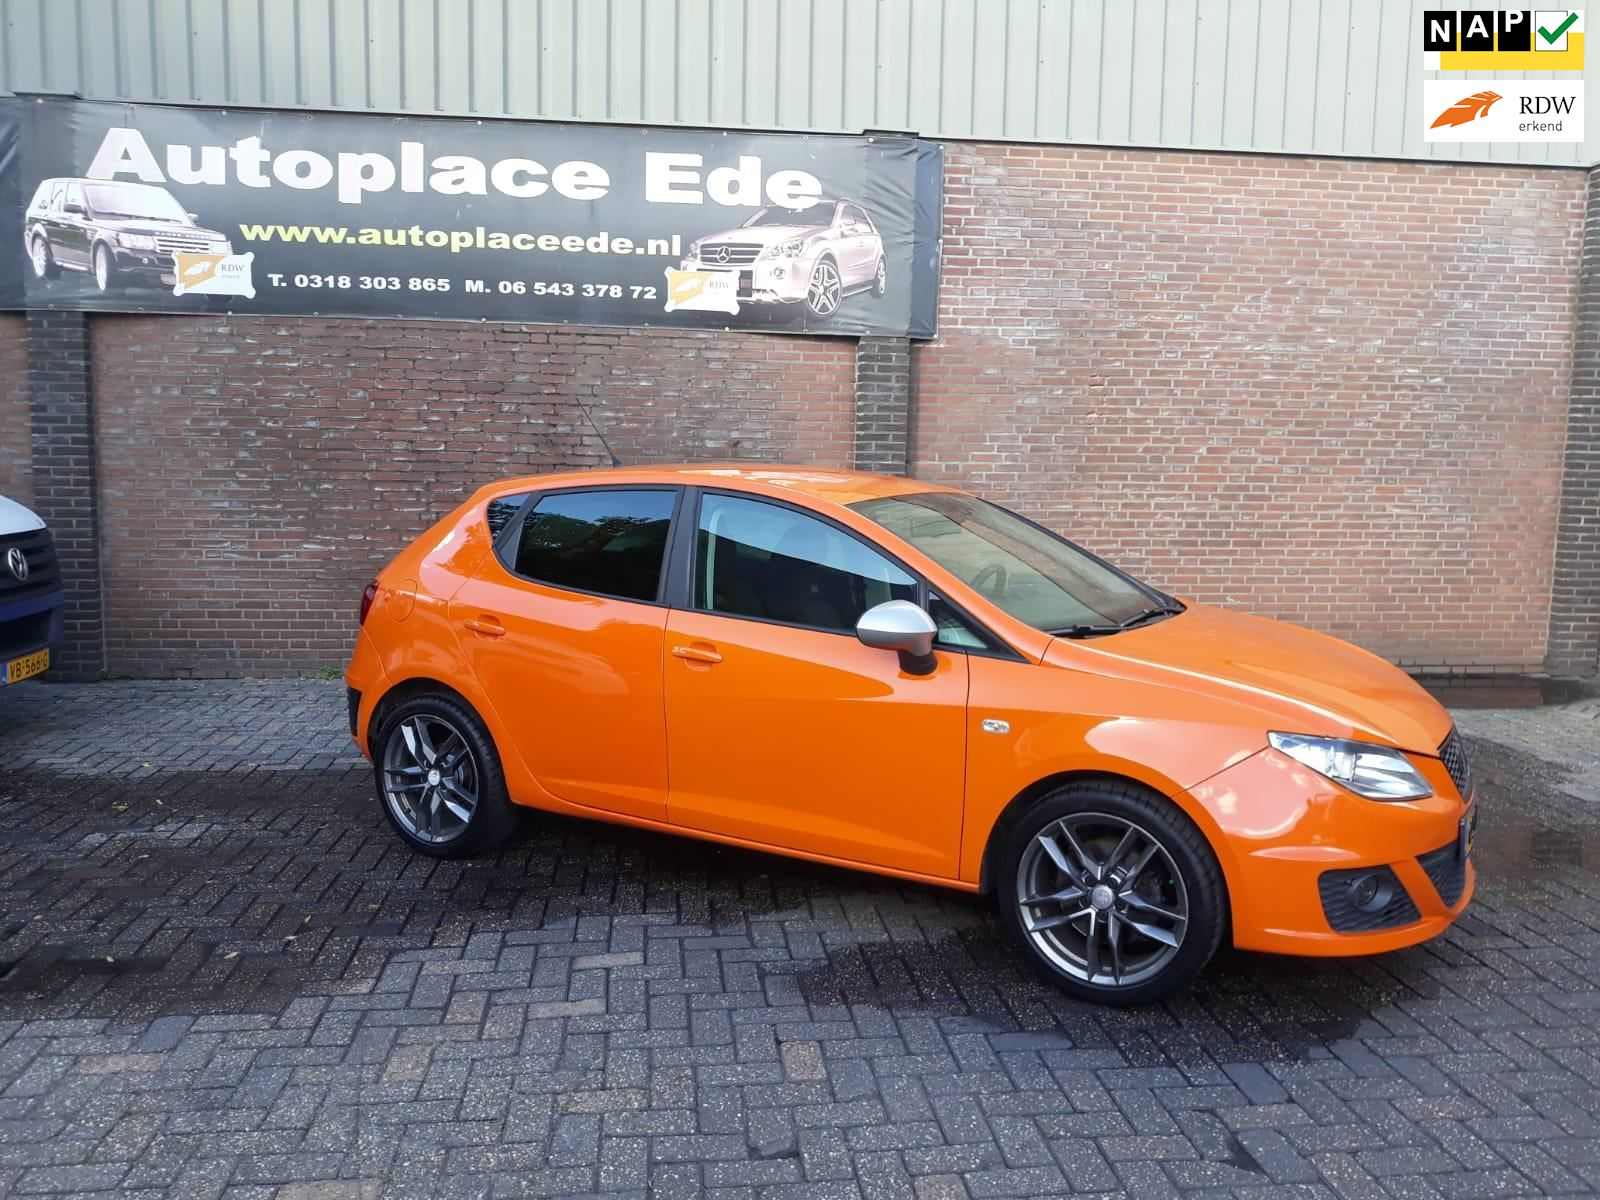 Seat Ibiza SC occasion - autoplaceede